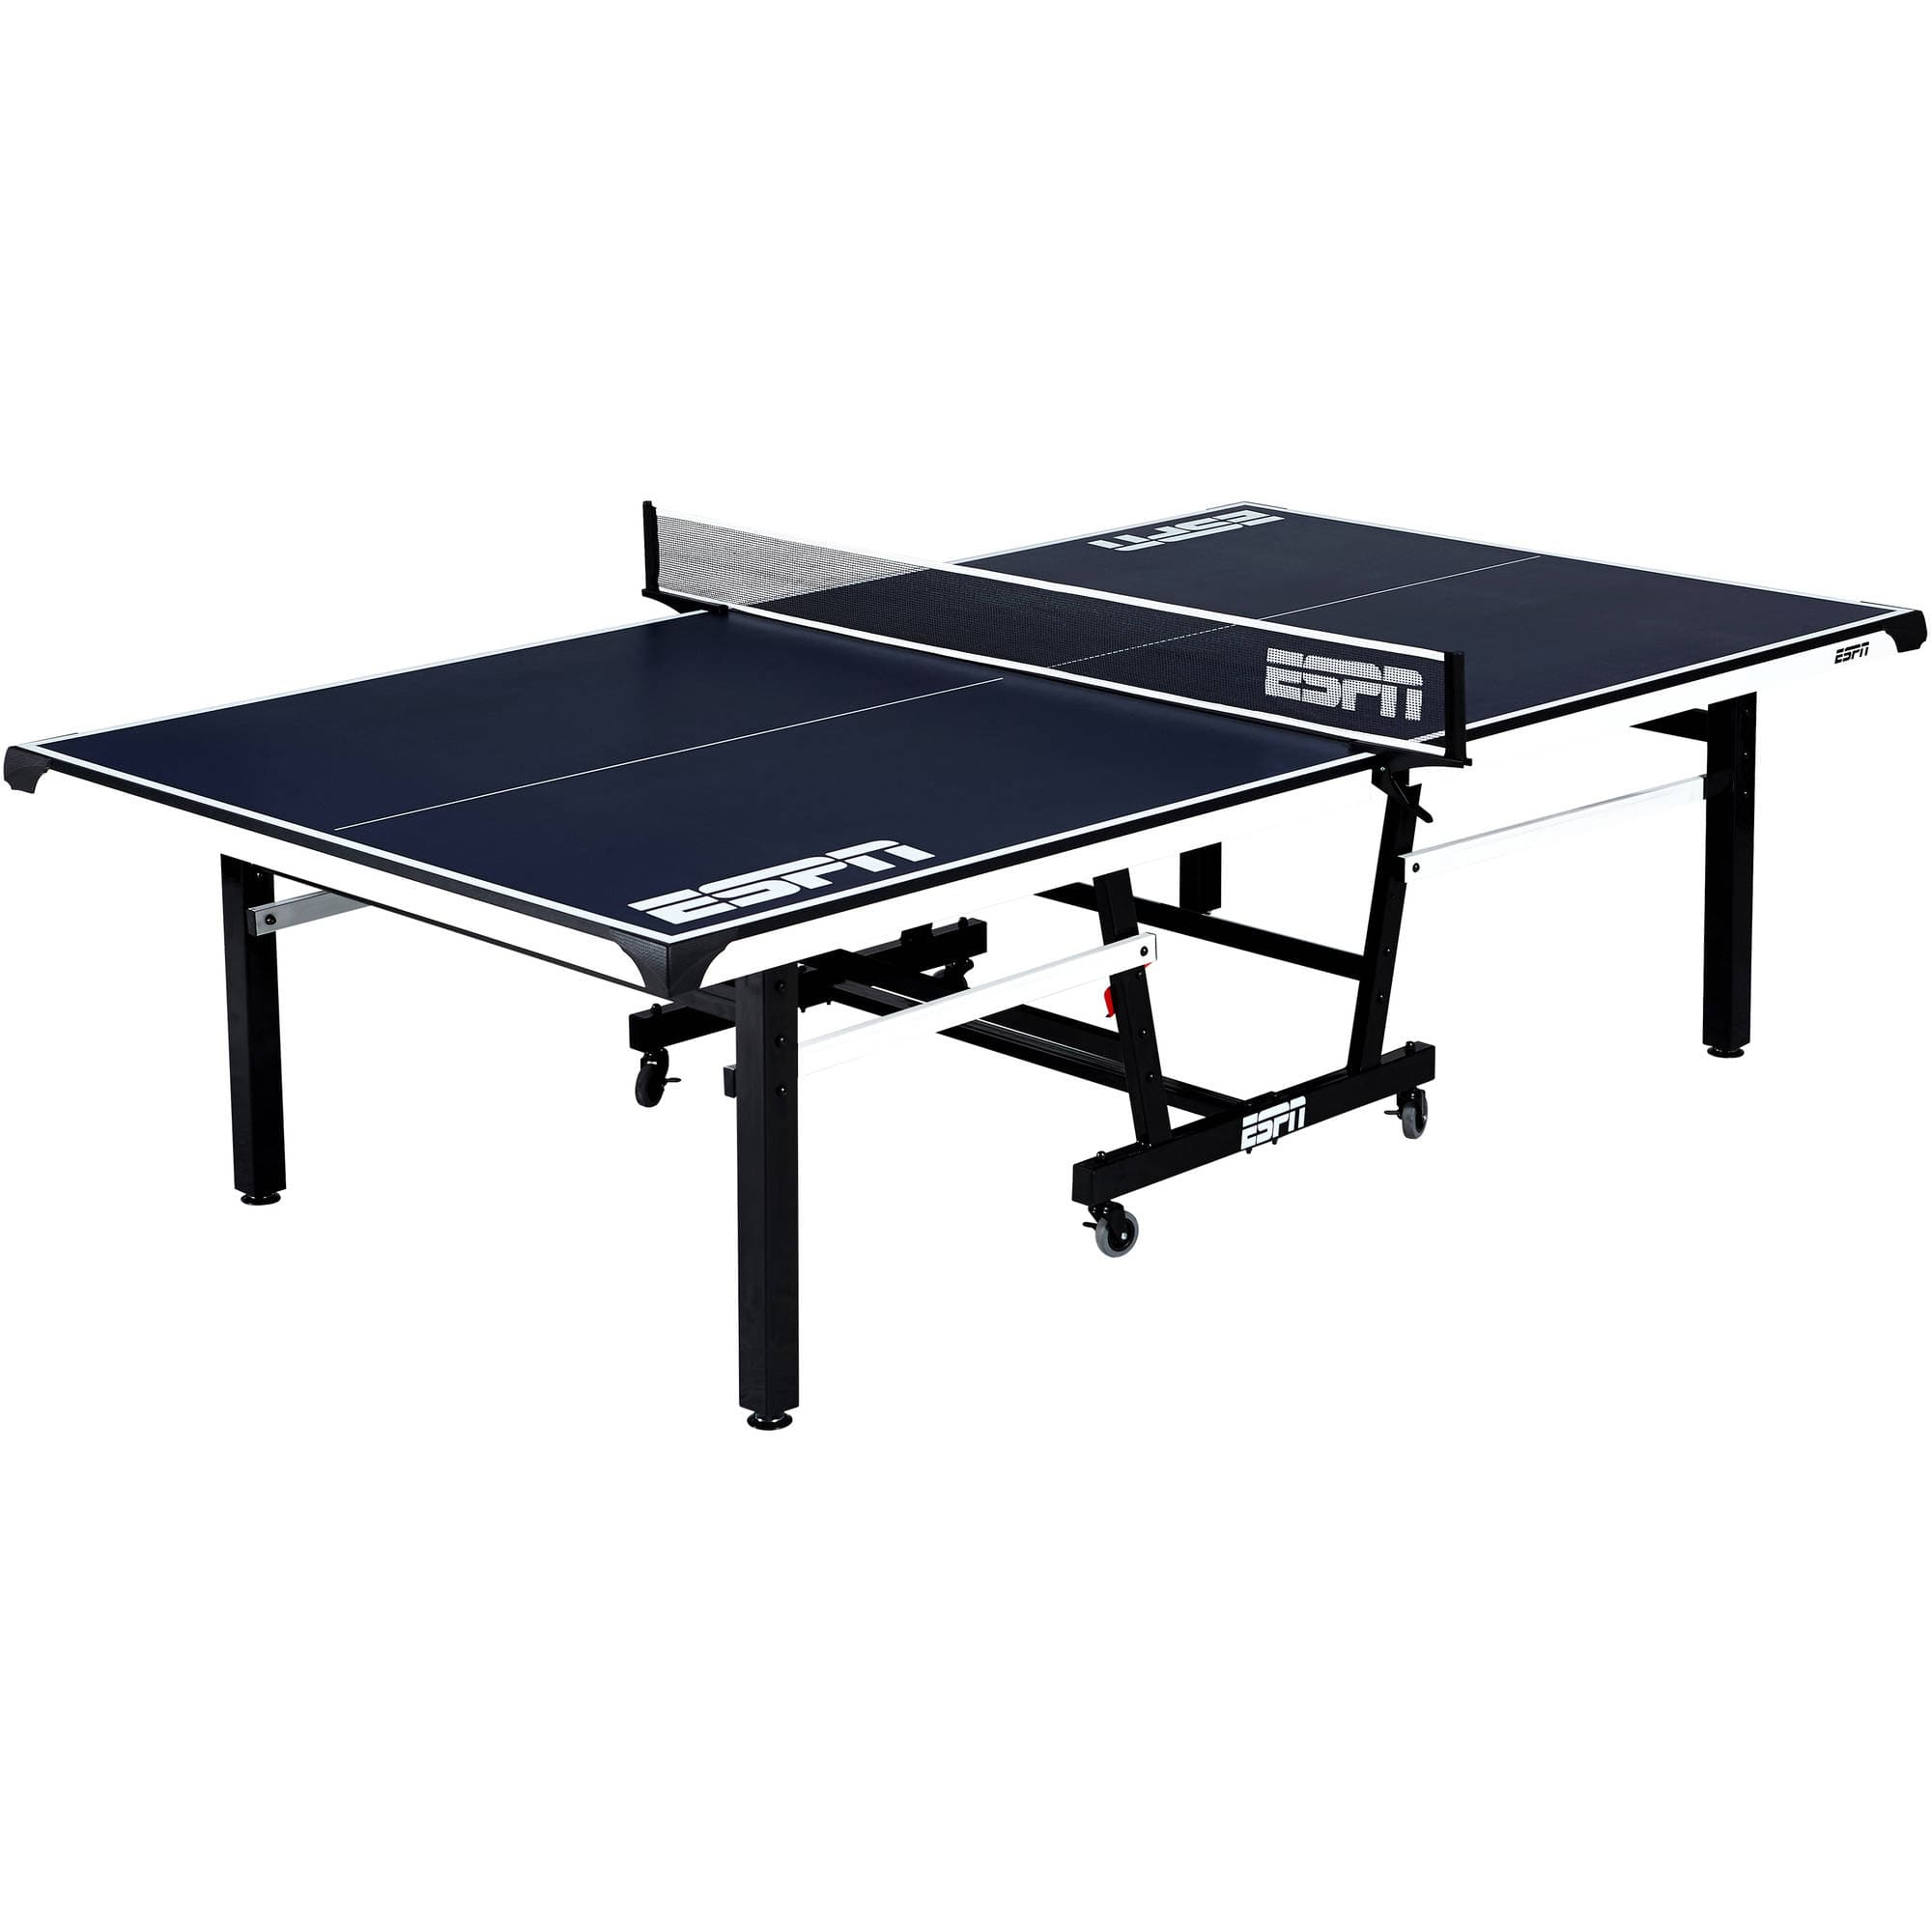 ESPN Official Size Table Tennis Table with Table Cover $240